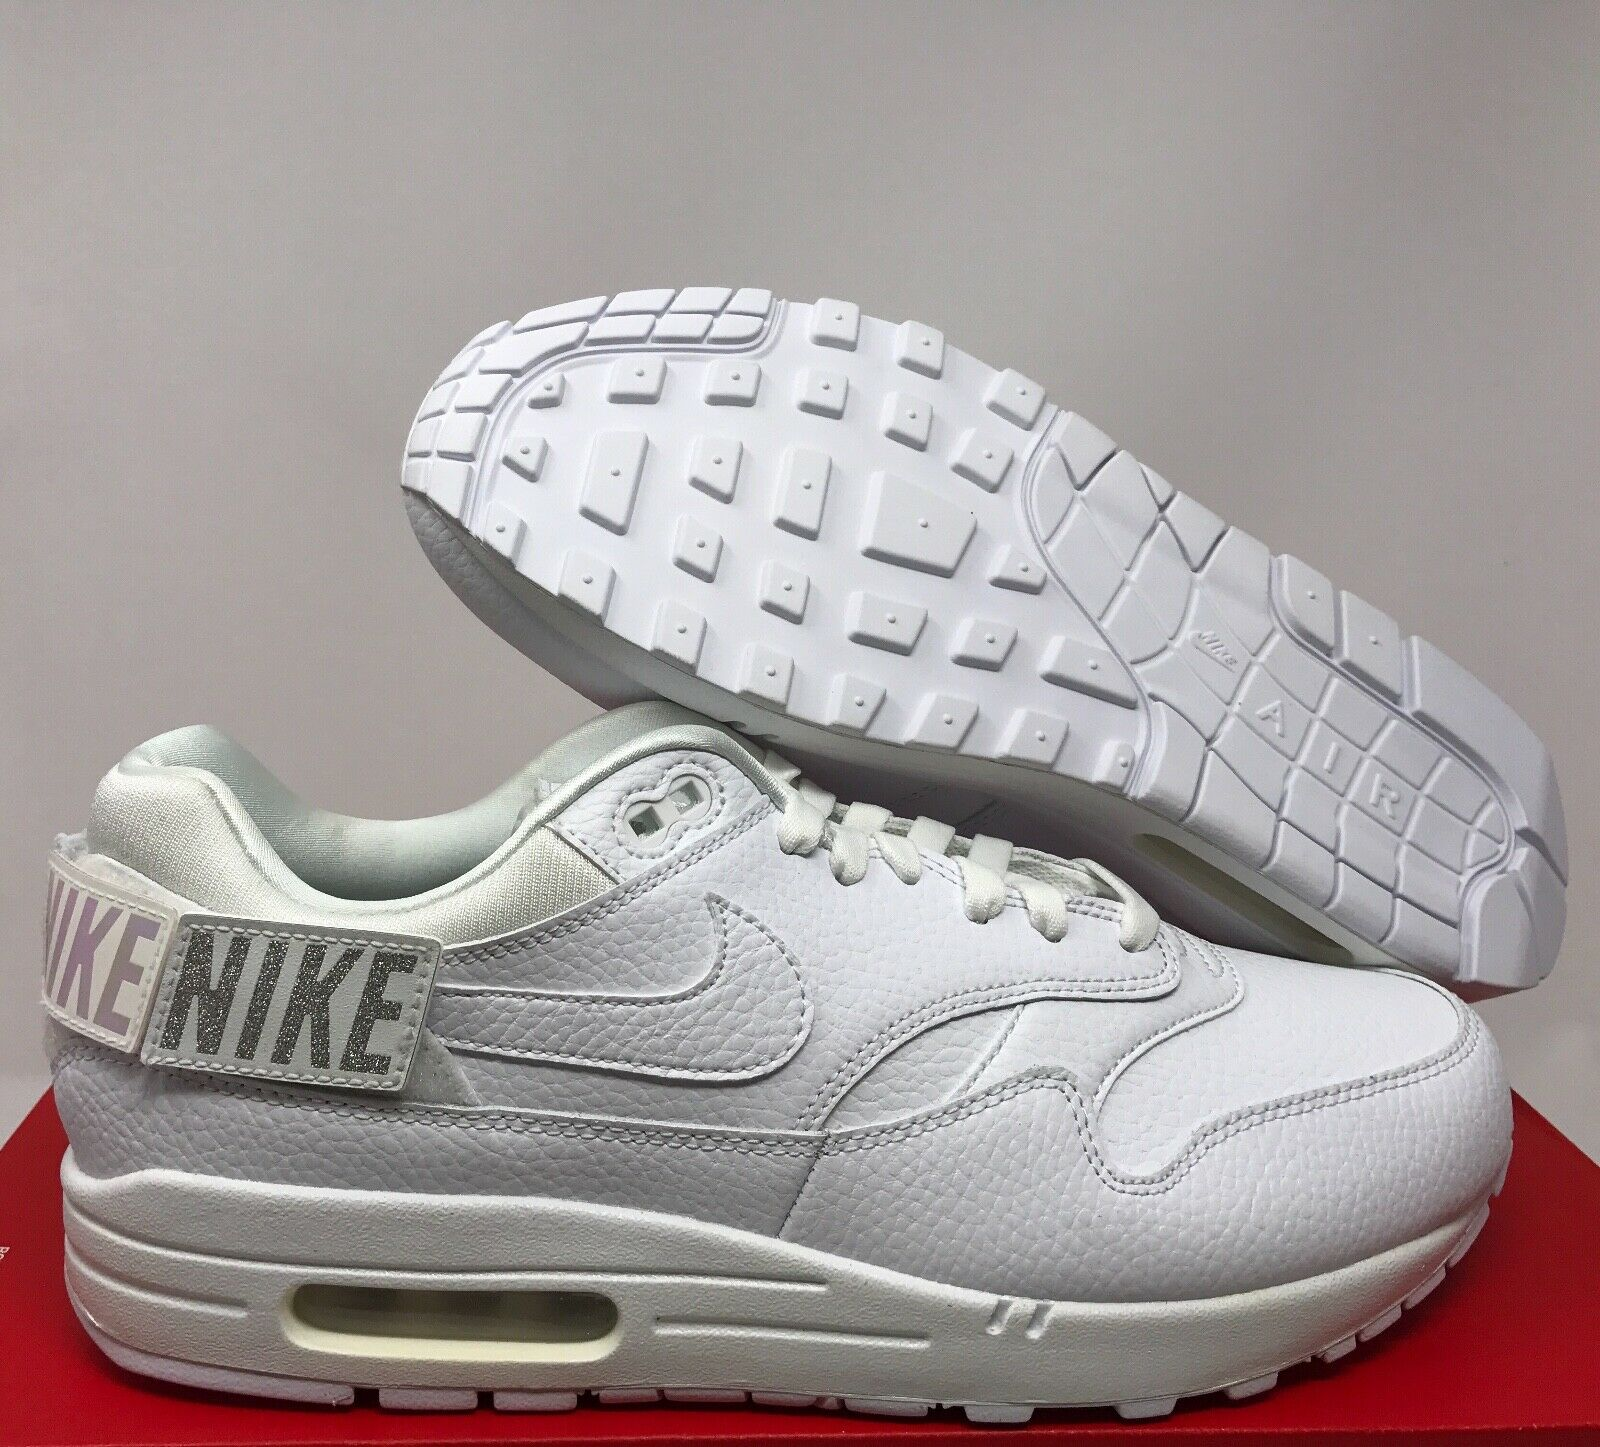 NIKE AIR MAX 1-100 PATCHES TRIPLE WHITE WOMEN SZ 12    MEN SZ 10.5 [AQ7826-100